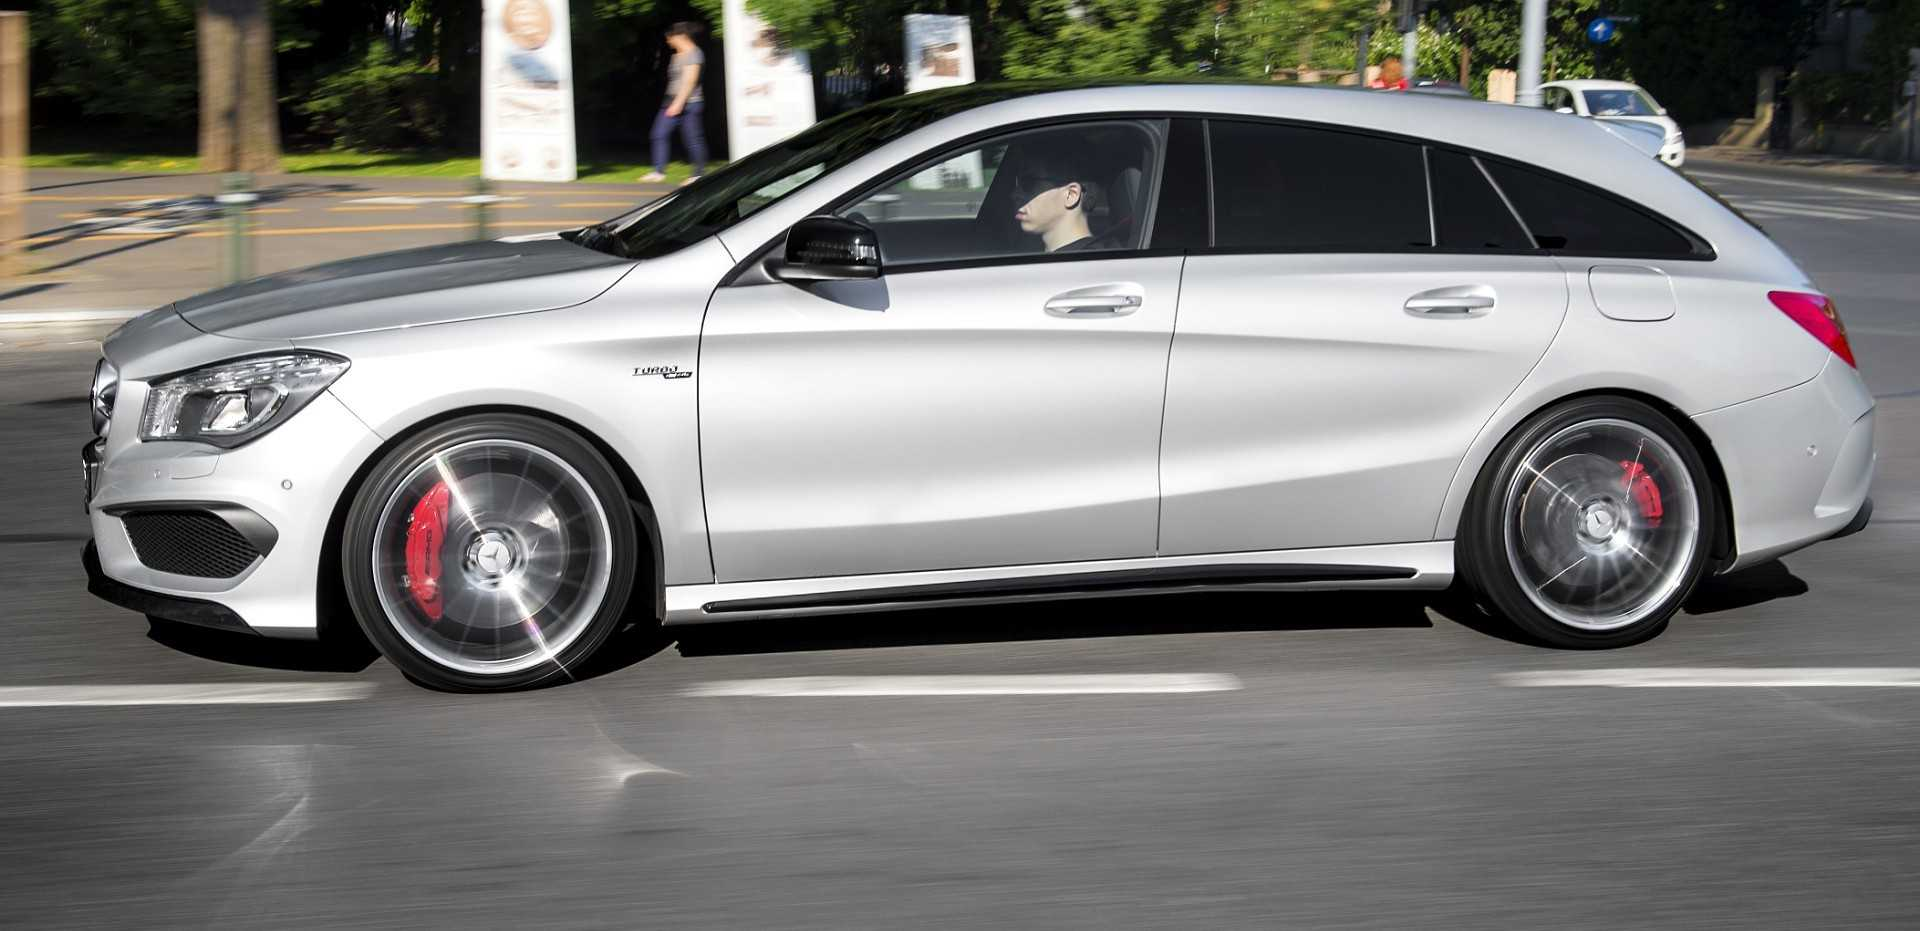 2016 Mercedes Benz CLA Shooting Brake Exposed in New Spy Shots